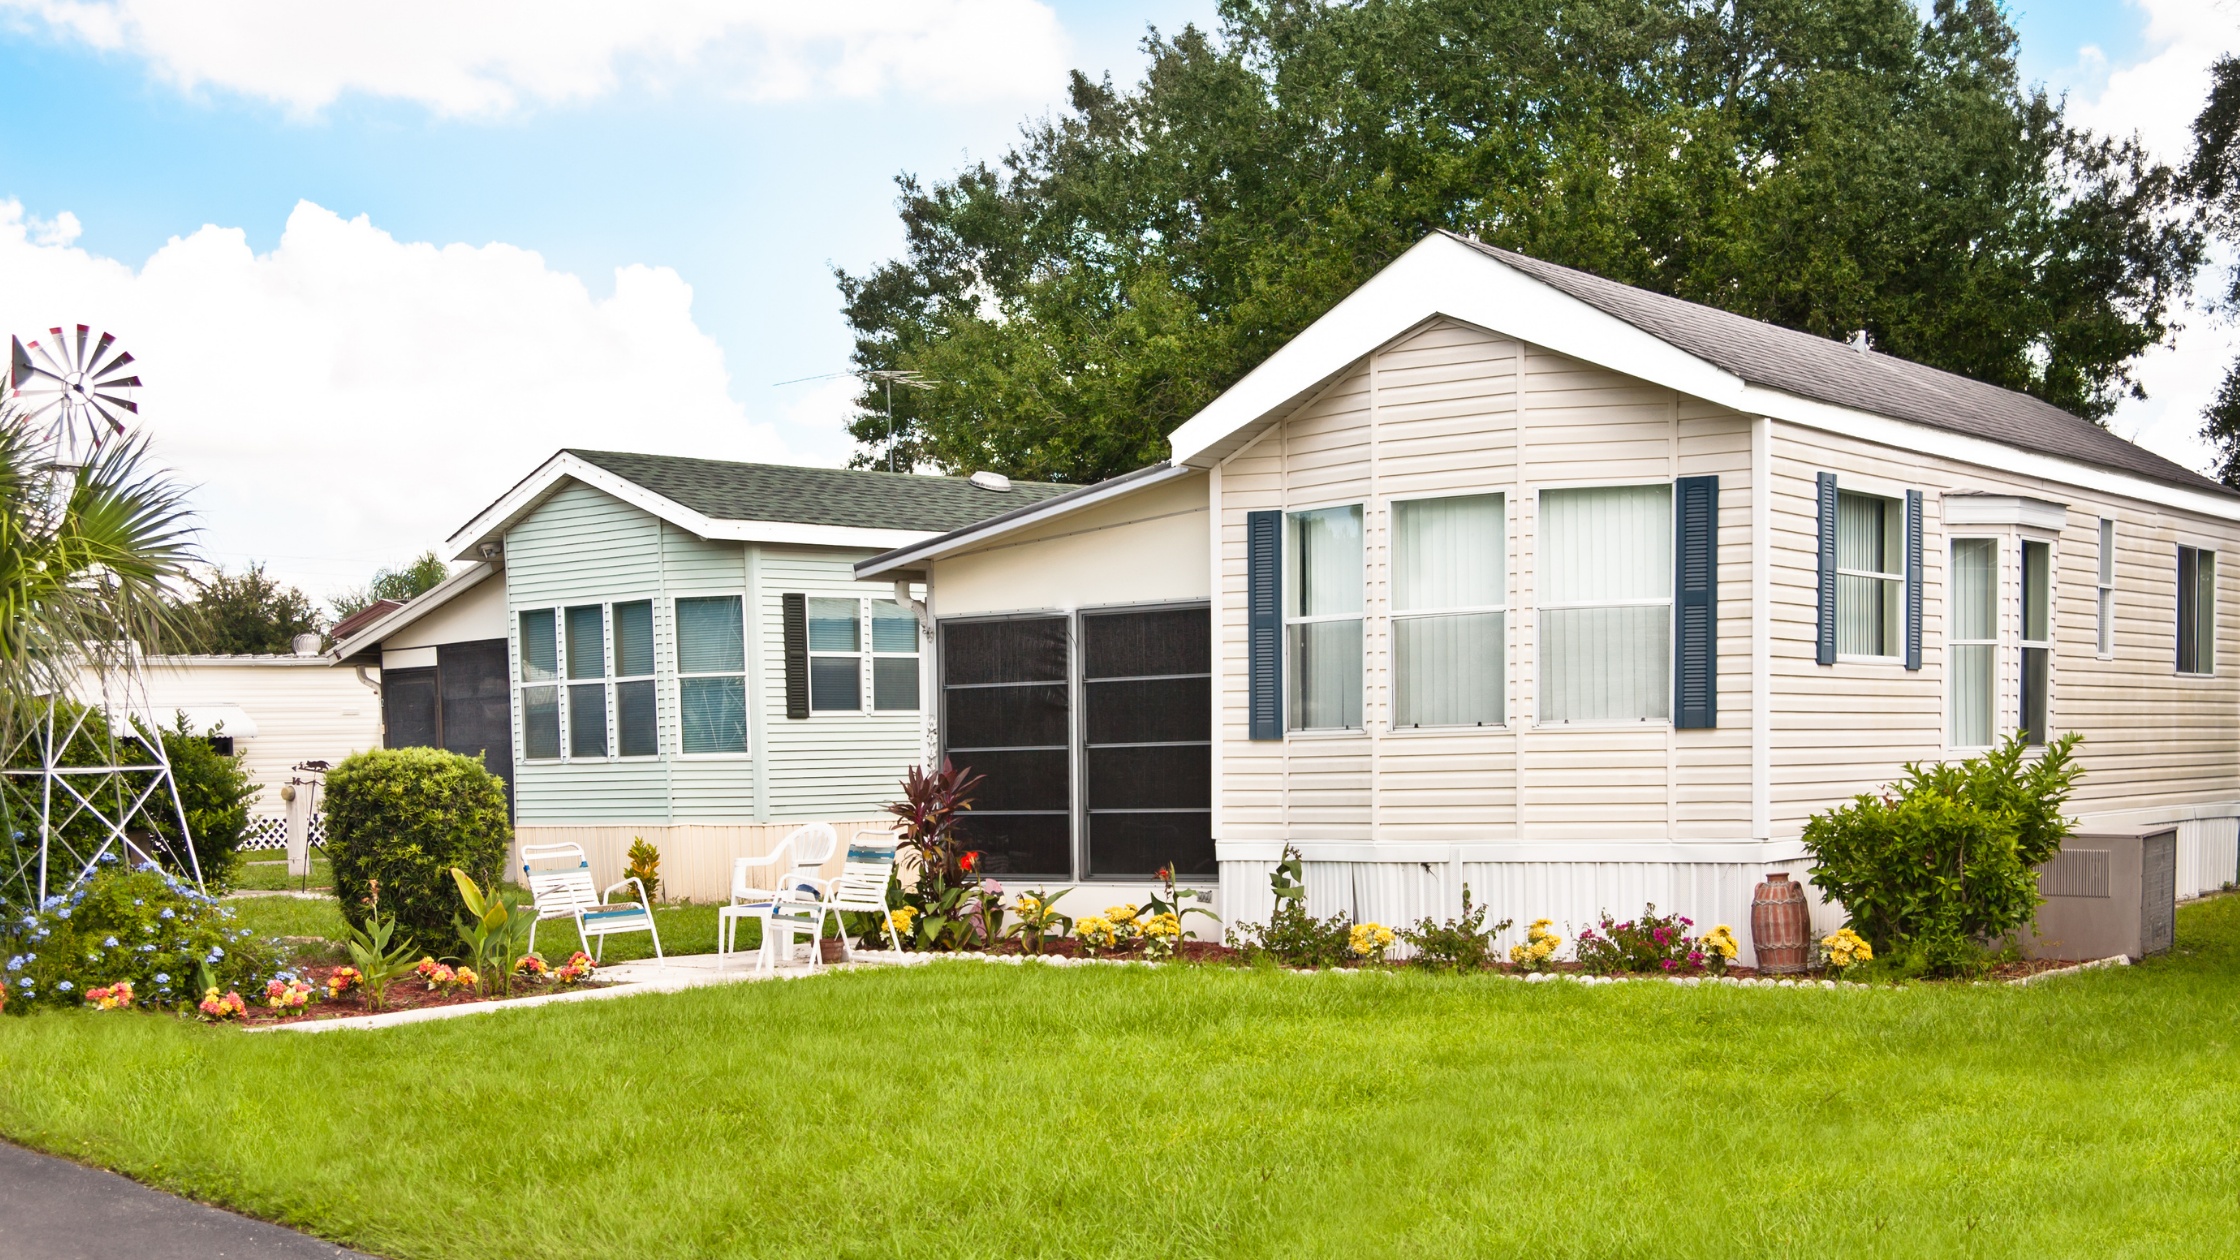 Millennials Are Flocking to Manufactured Home Communities